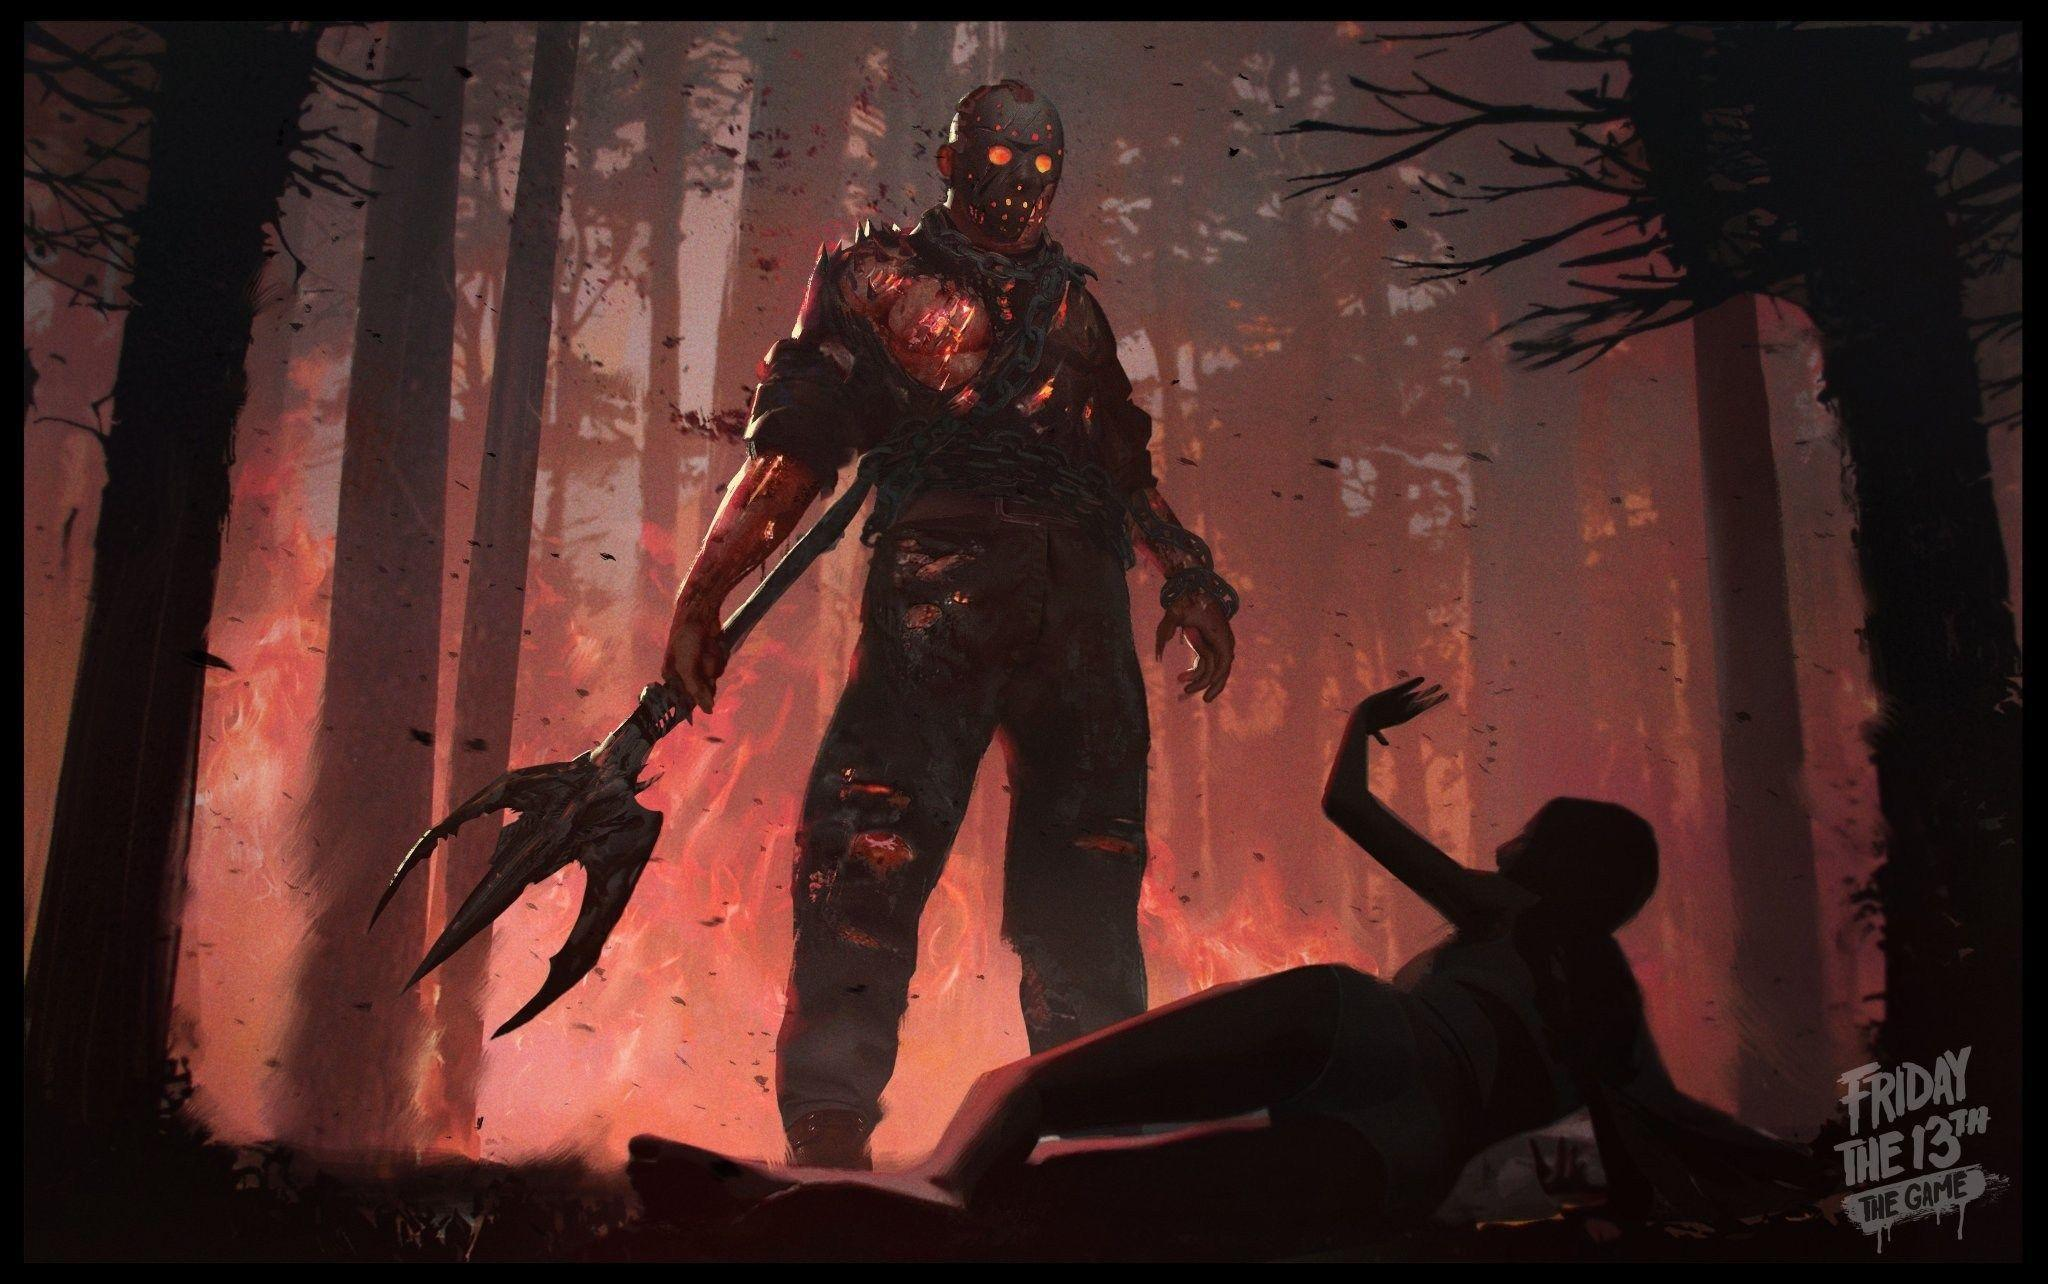 Friday 13th wallpapers wallpaper cave - Friday the thirteenth wallpaper ...